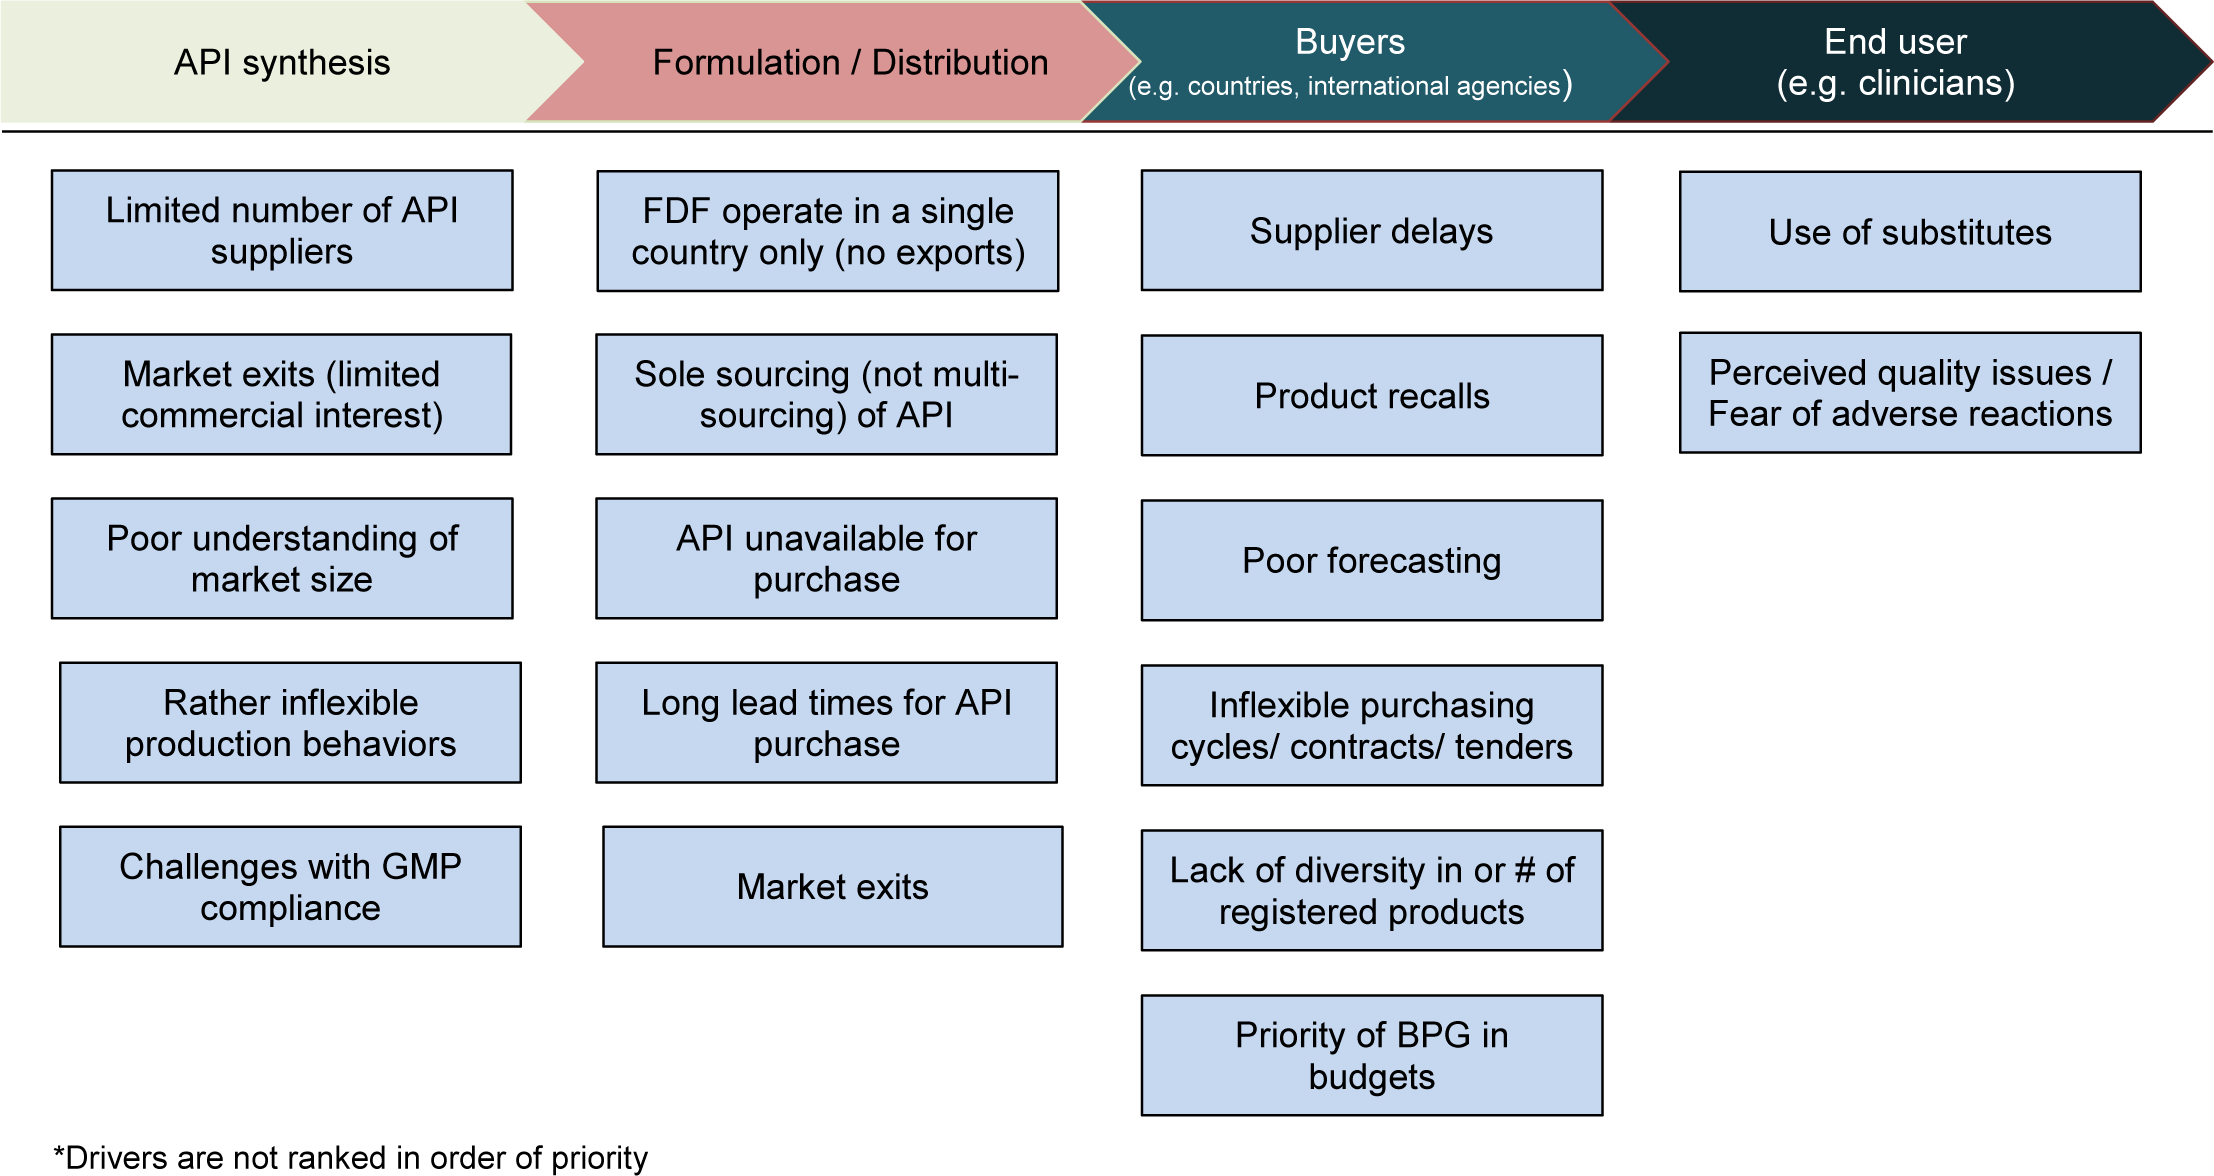 Identified drivers of BPG stock-outs across the value chain.